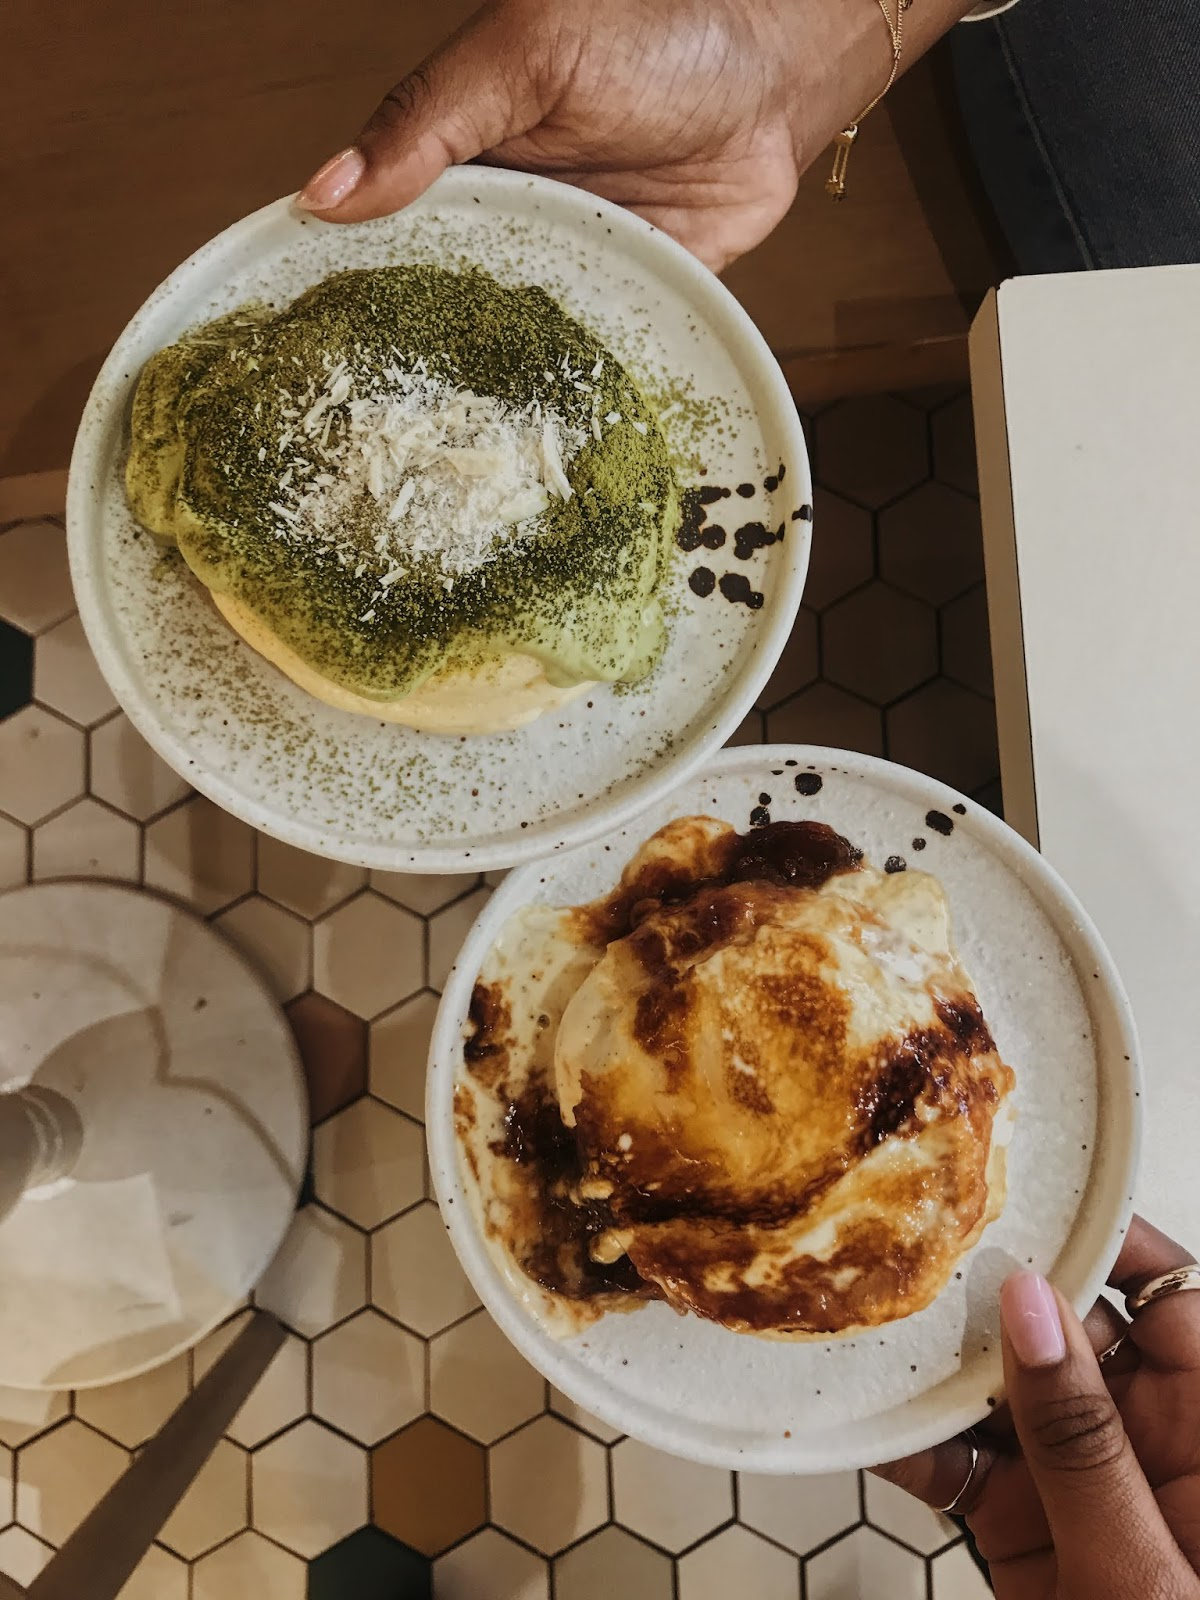 Japanese souffle pancakes from Cha Cha Rolls in London Chinatown